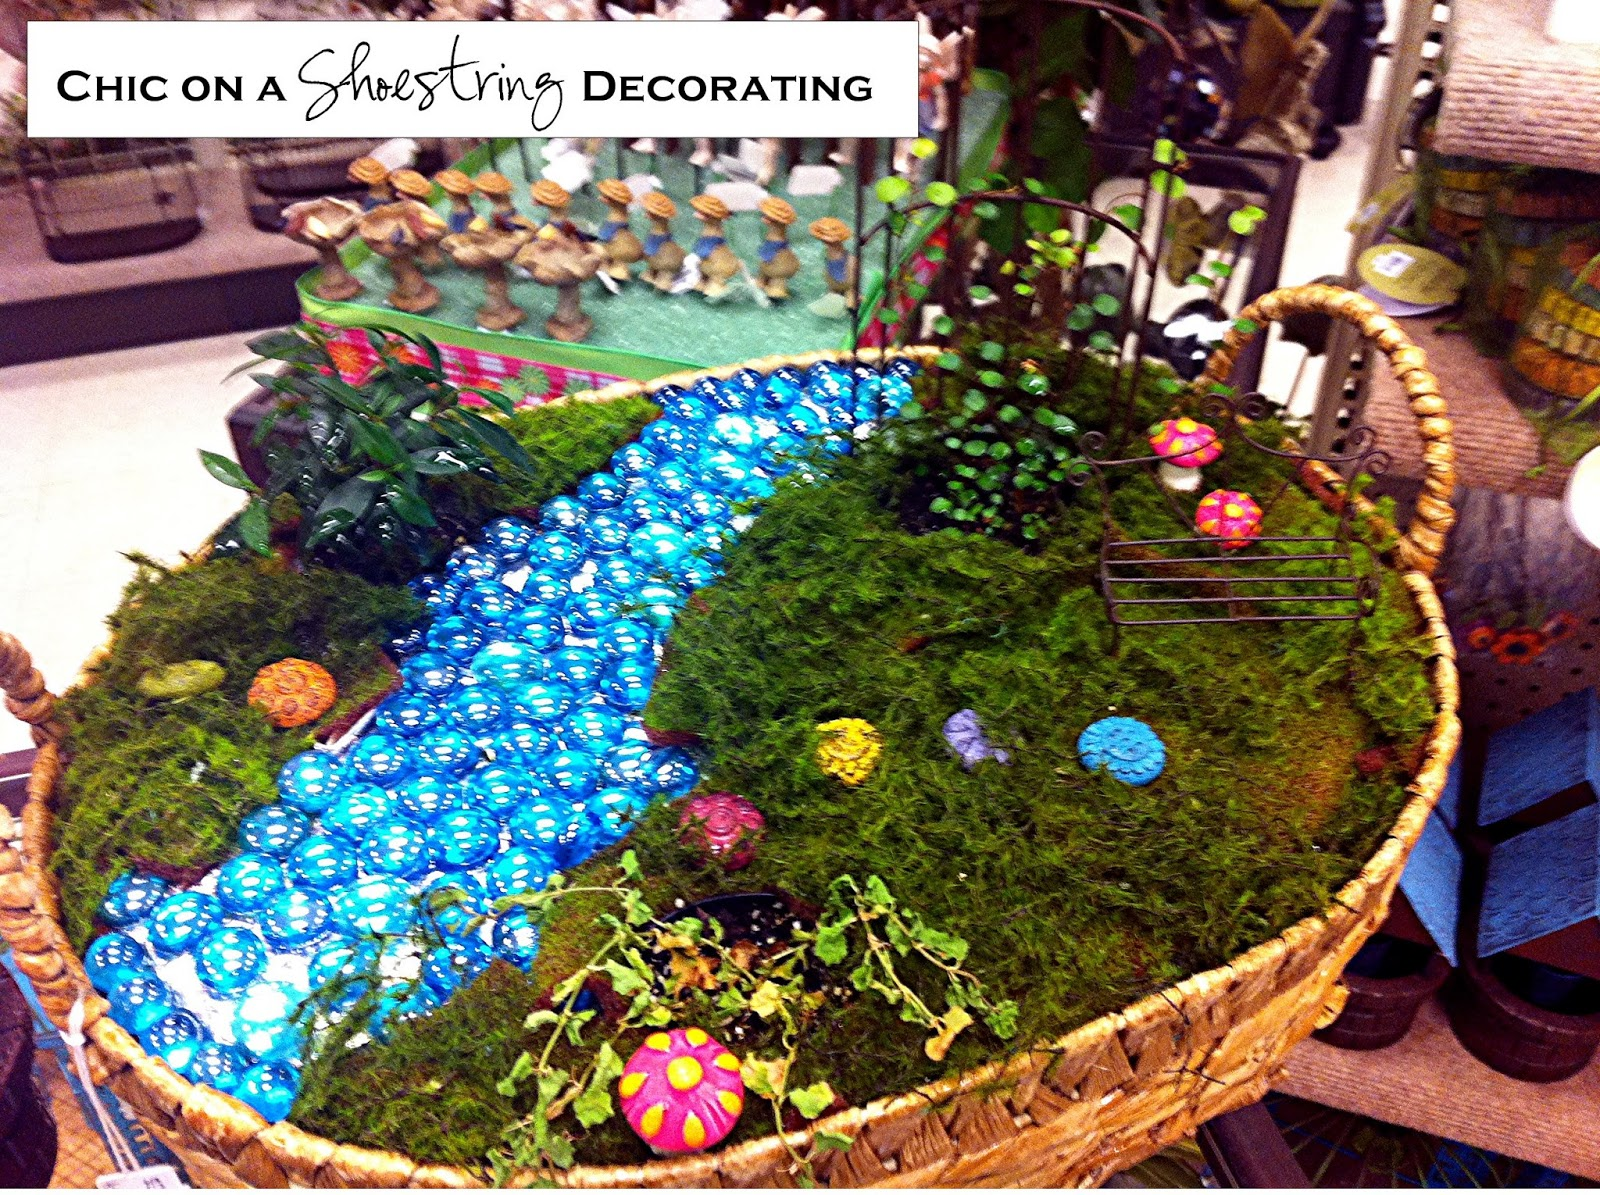 Chic on a shoestring decorating may 2013 for Garden maker online